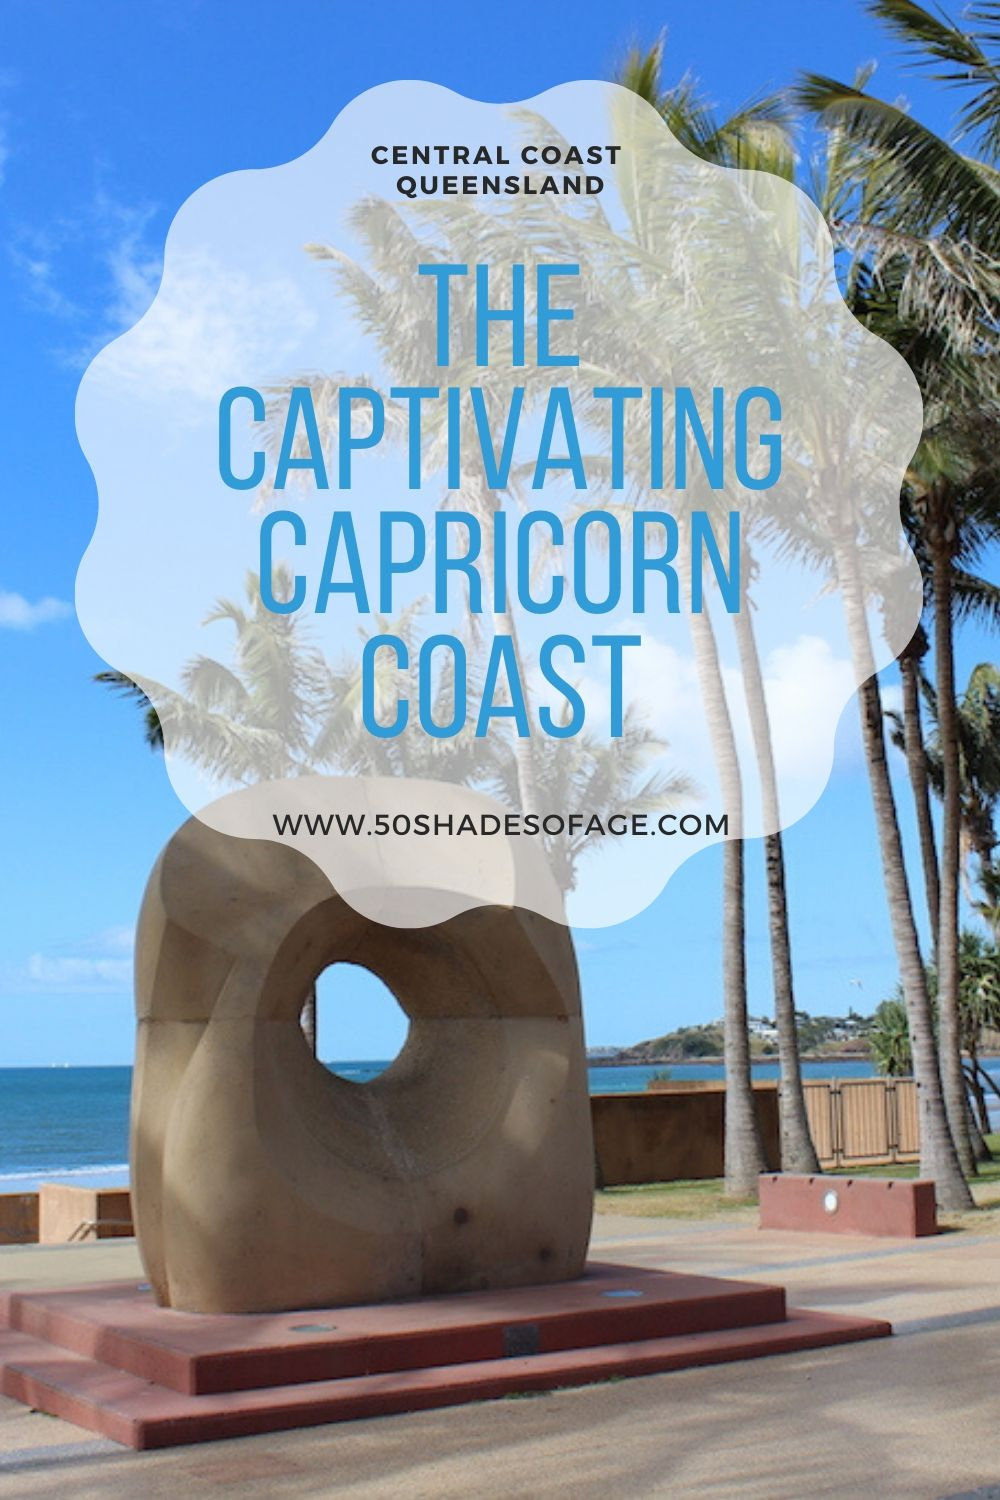 The Captivating Capricorn Coast